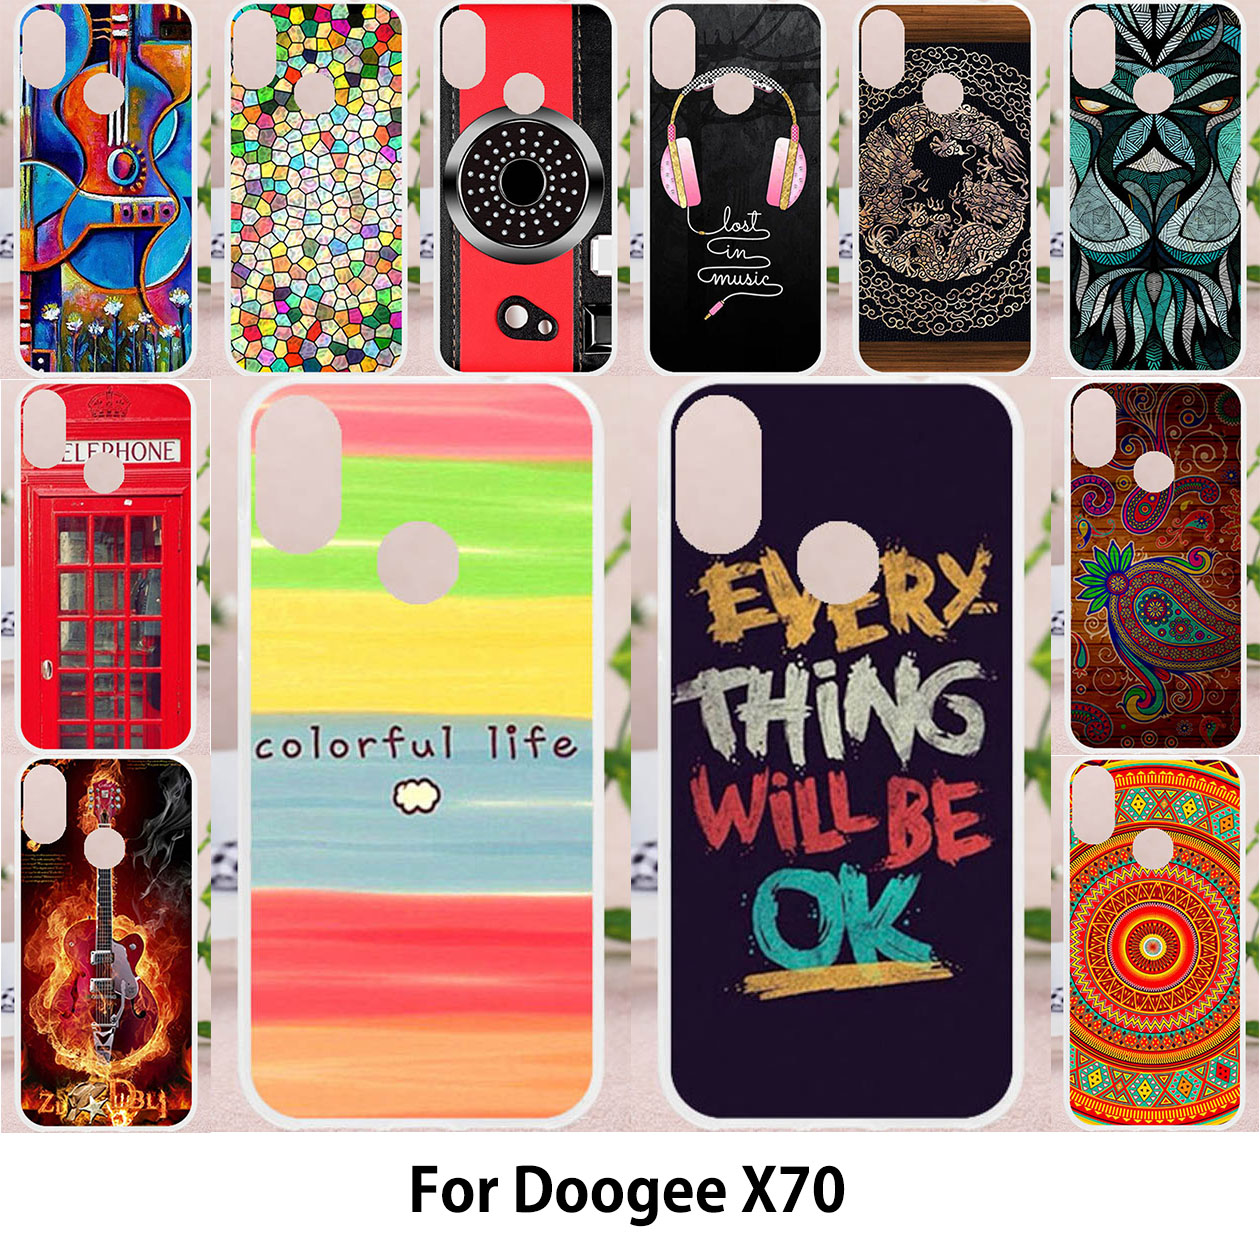 TAOYUNXI Cases For Doogee X70 Back Covers 5.5 inch Soft Silicone Painting Bags Soft TPU Patterned Skins Shell Housings